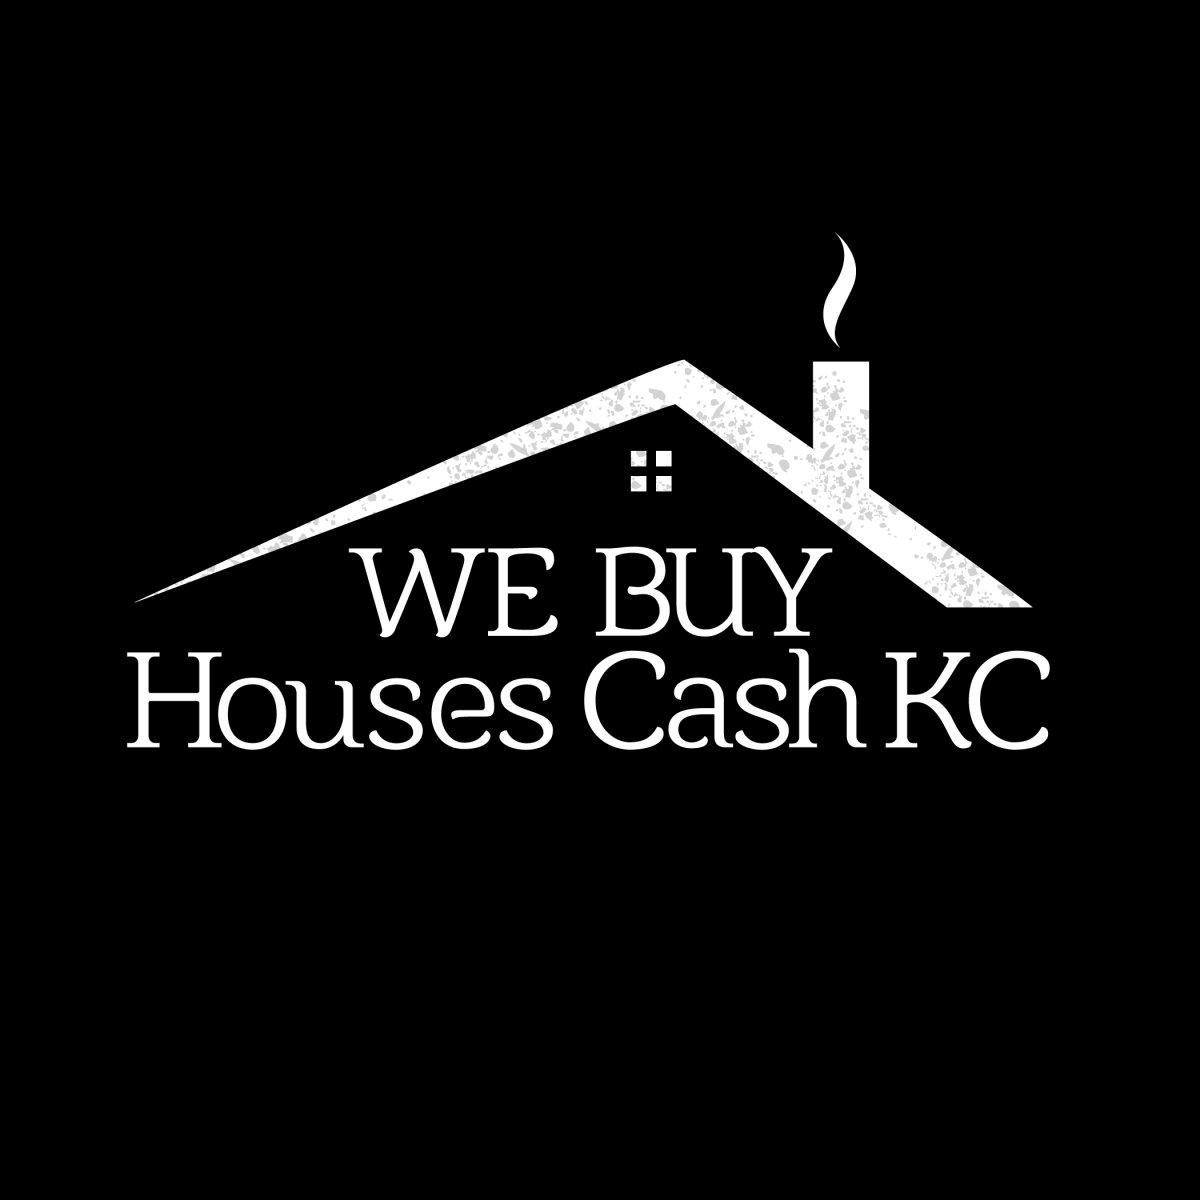 We buy houses cash in Kansas City logo